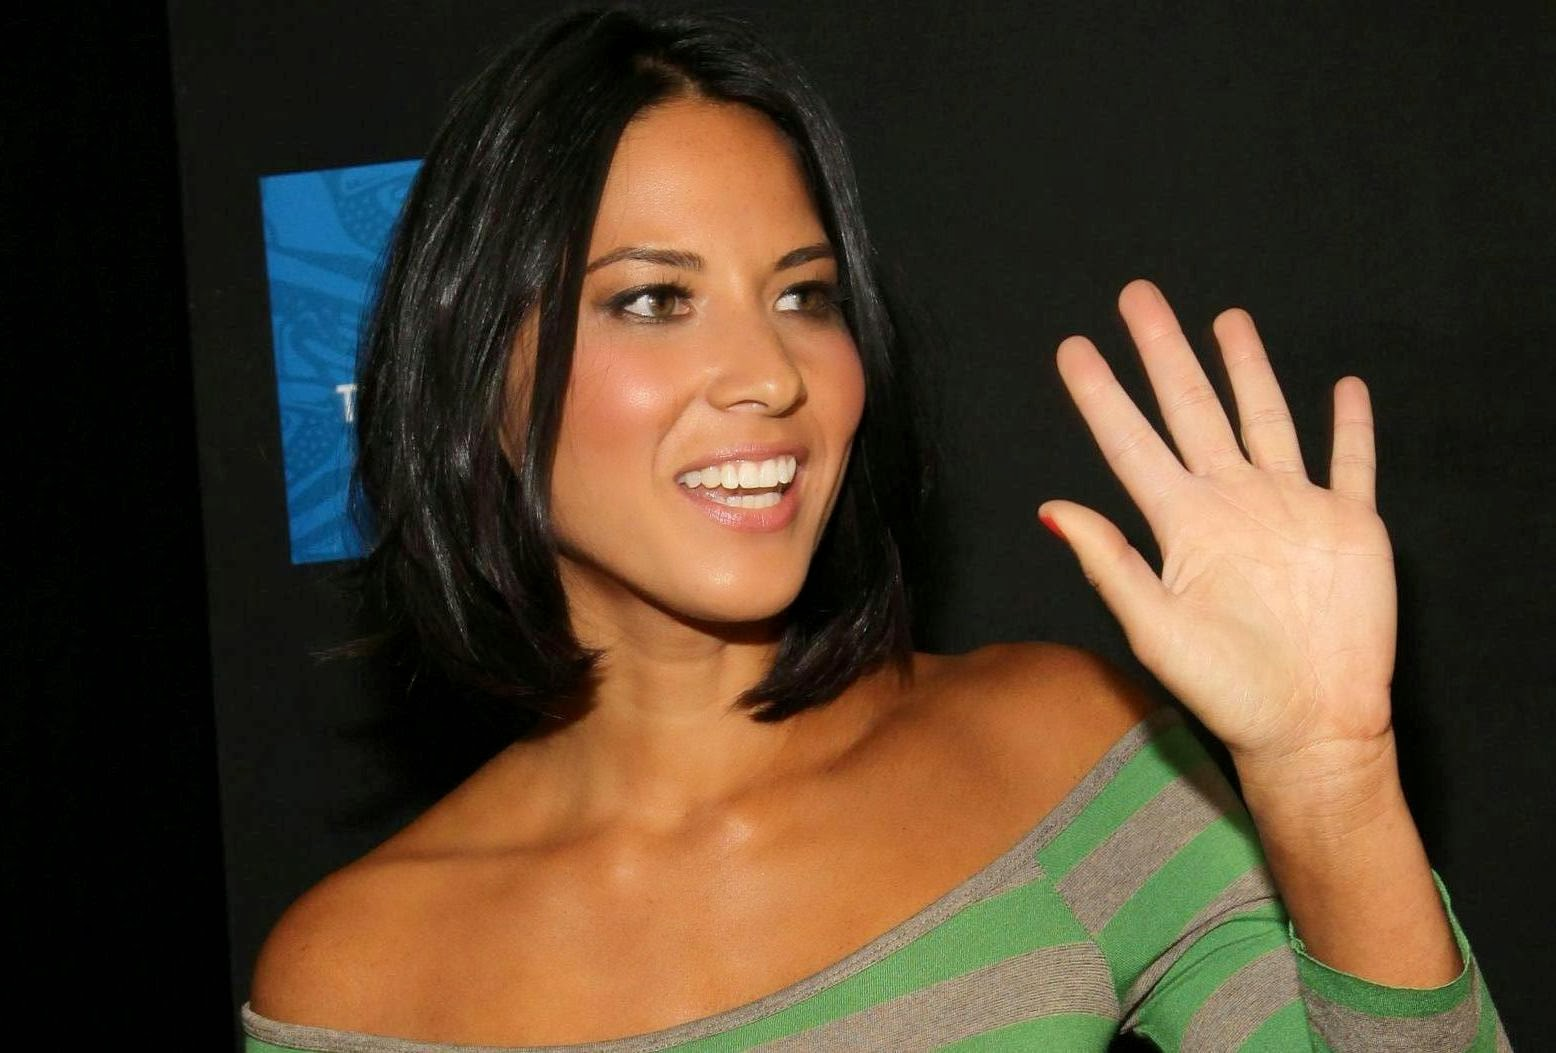 olivia munn30 1920x1080 wallpapers - photo #38